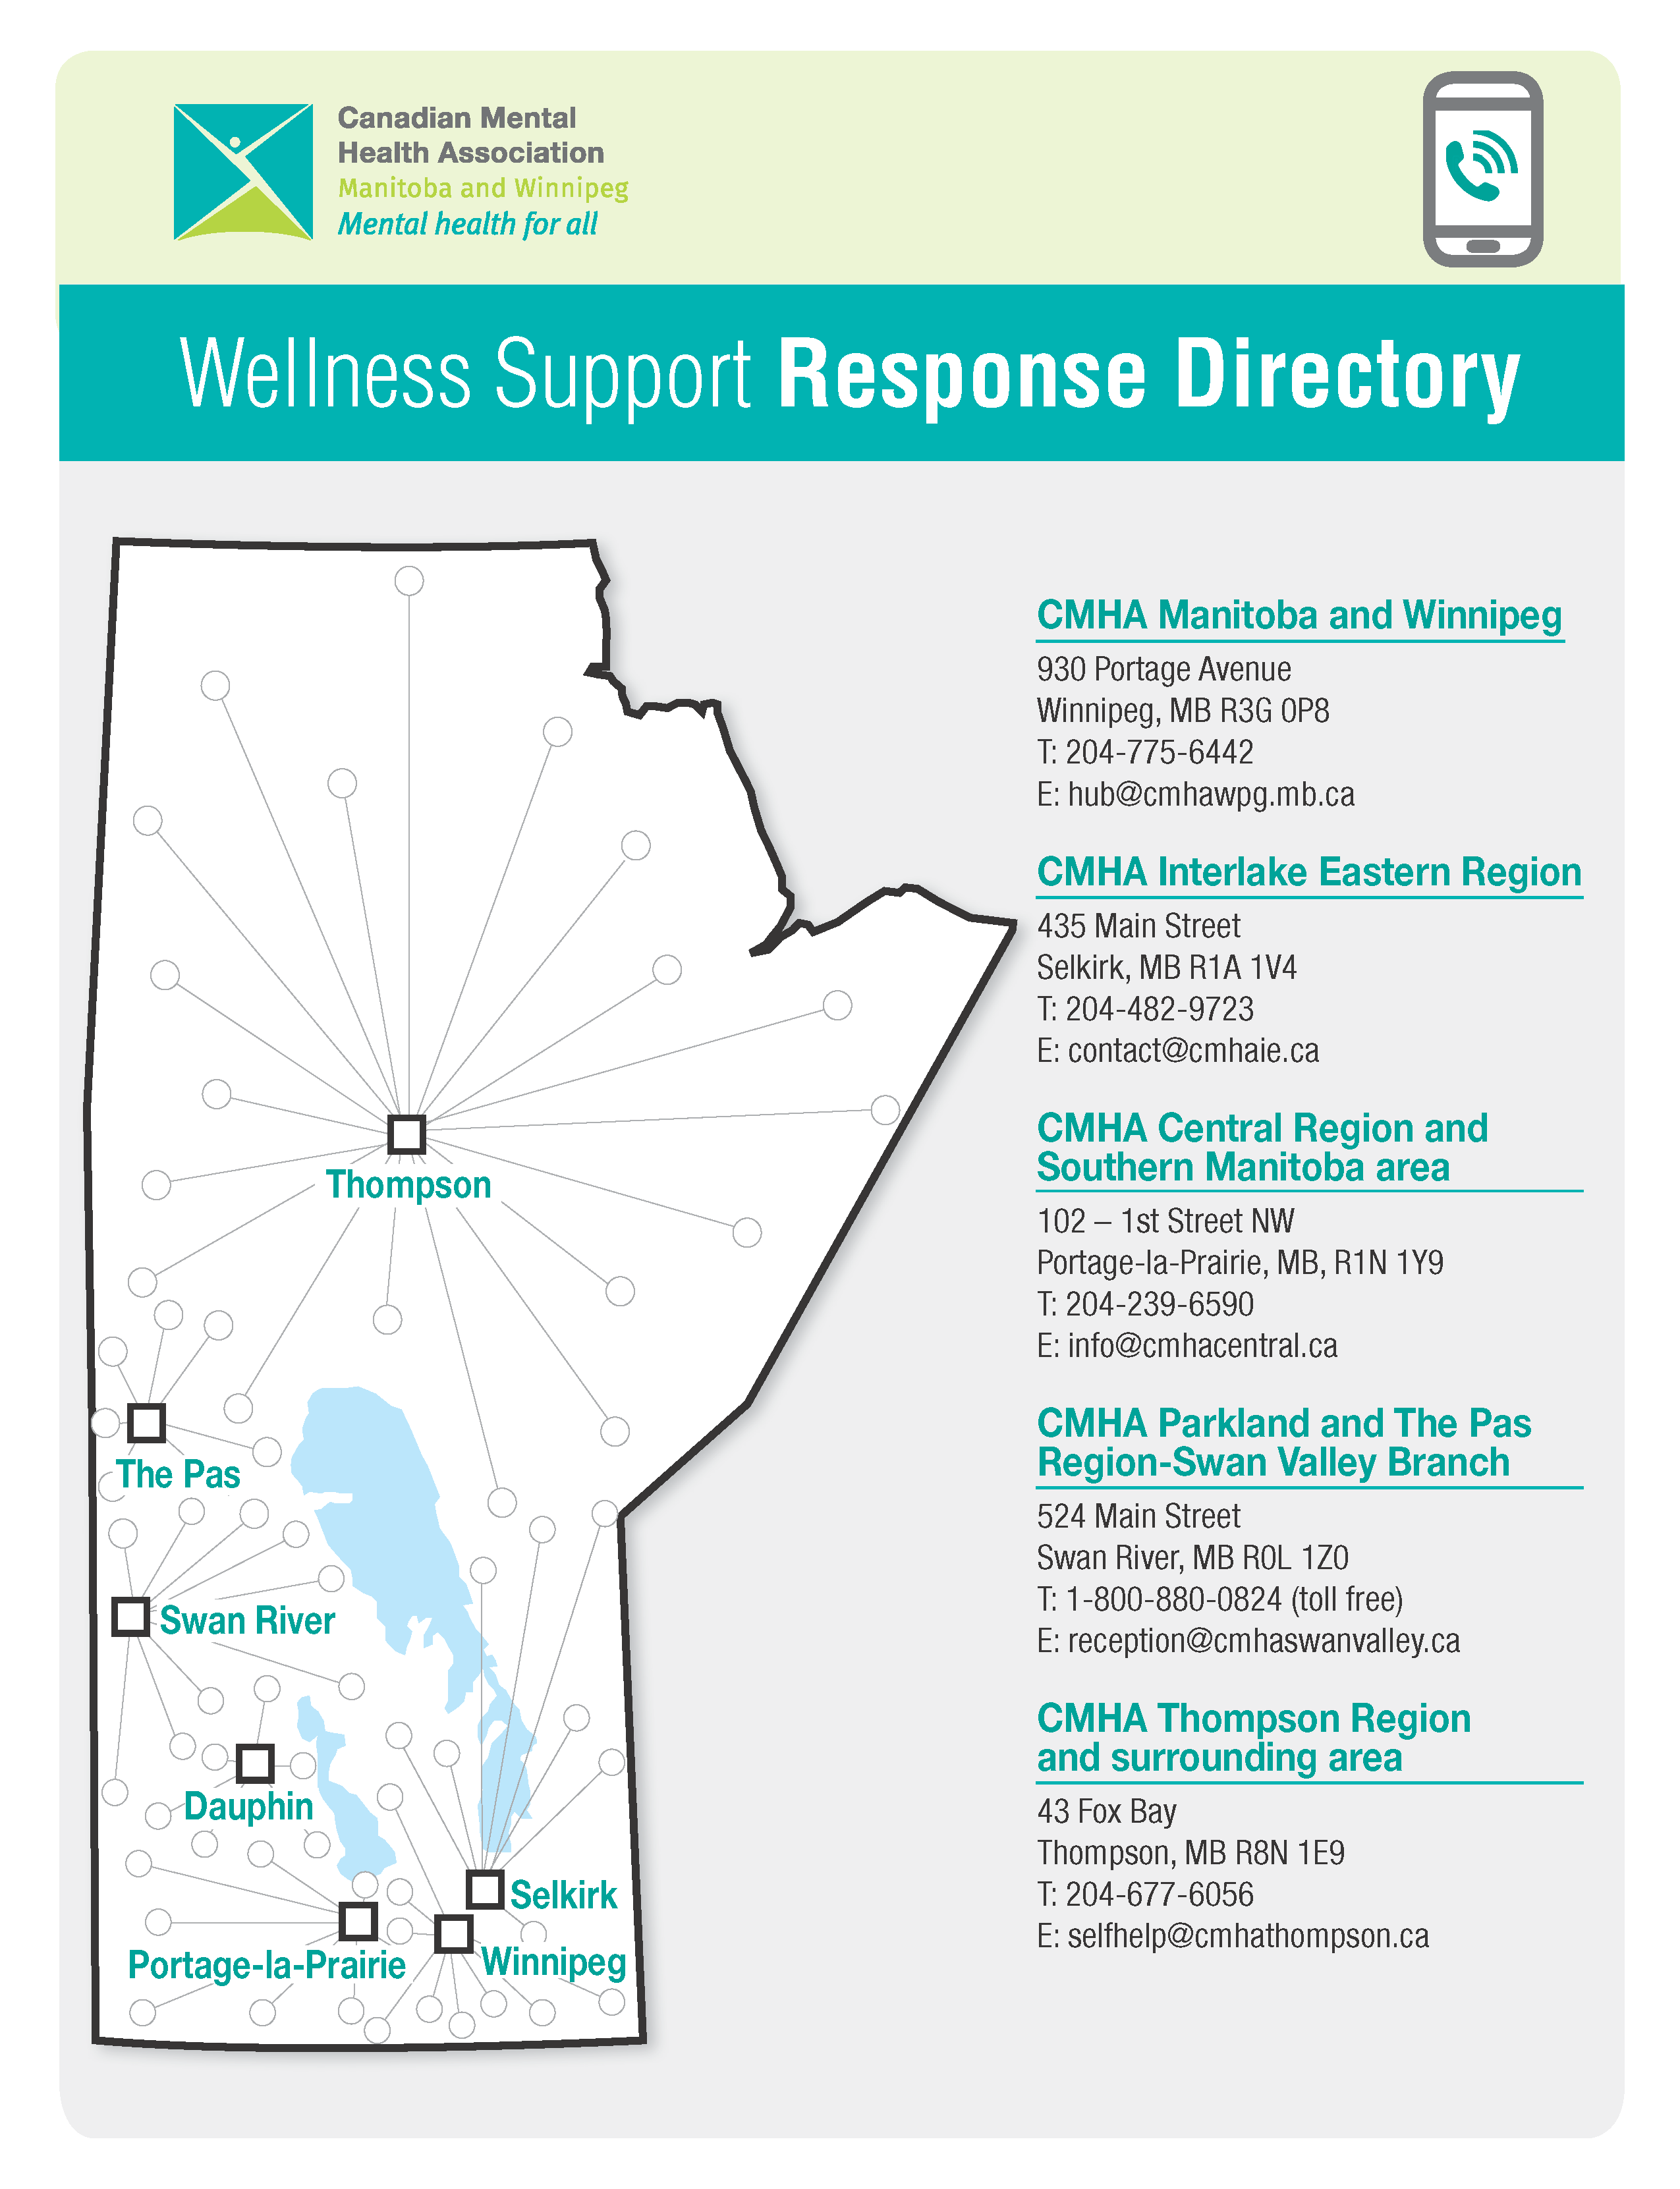 CMHA Wellness Support Response Line